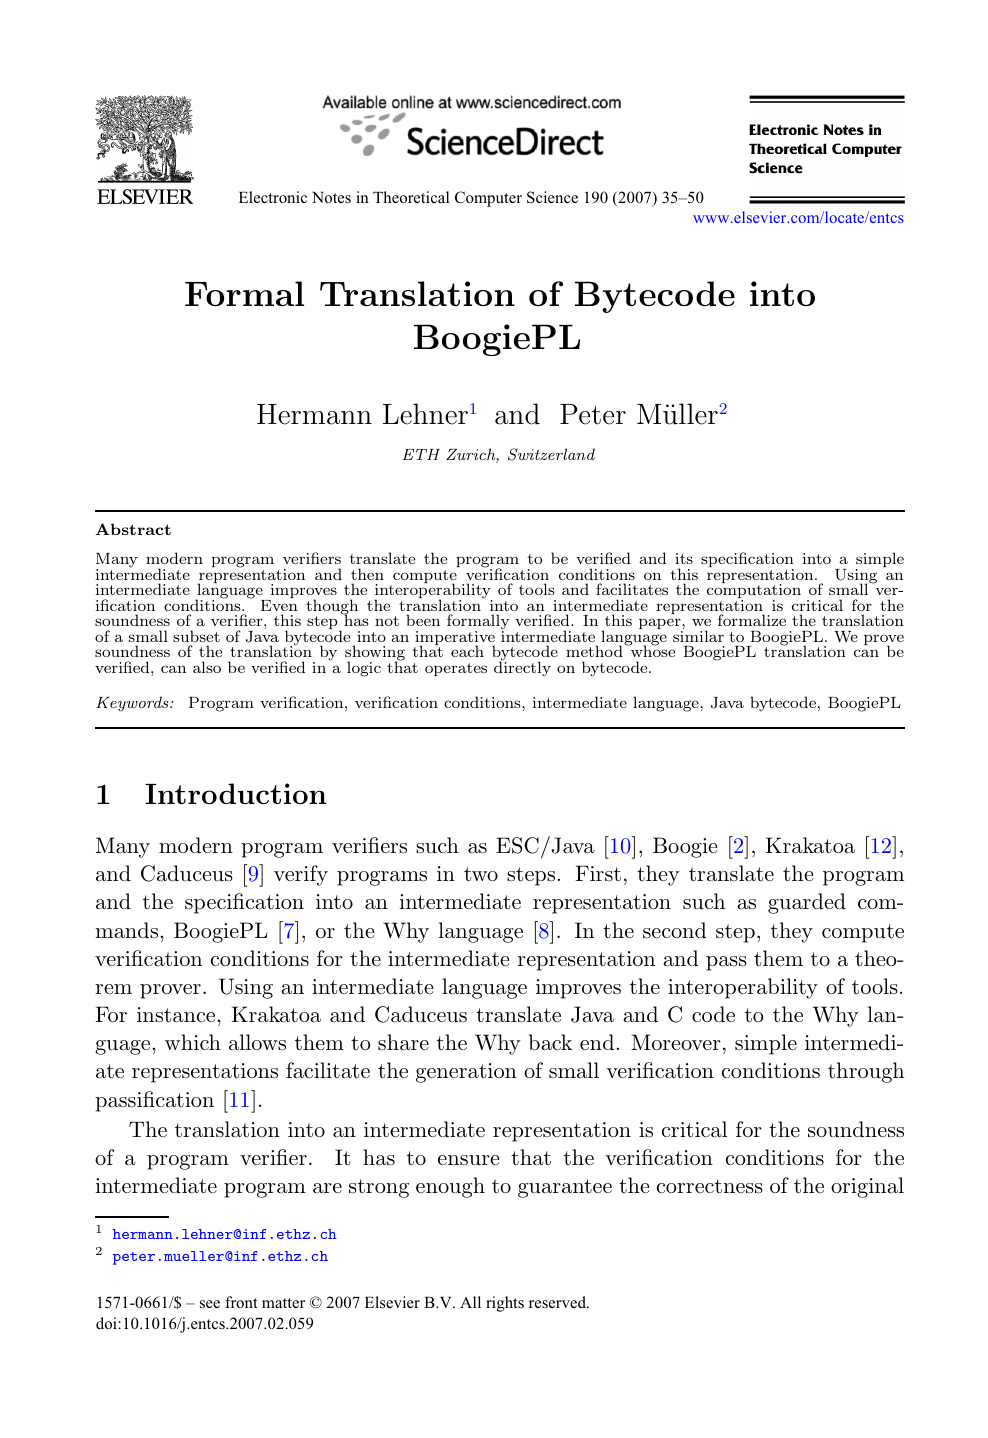 Formal Translation of Bytecode into BoogiePL – topic of research